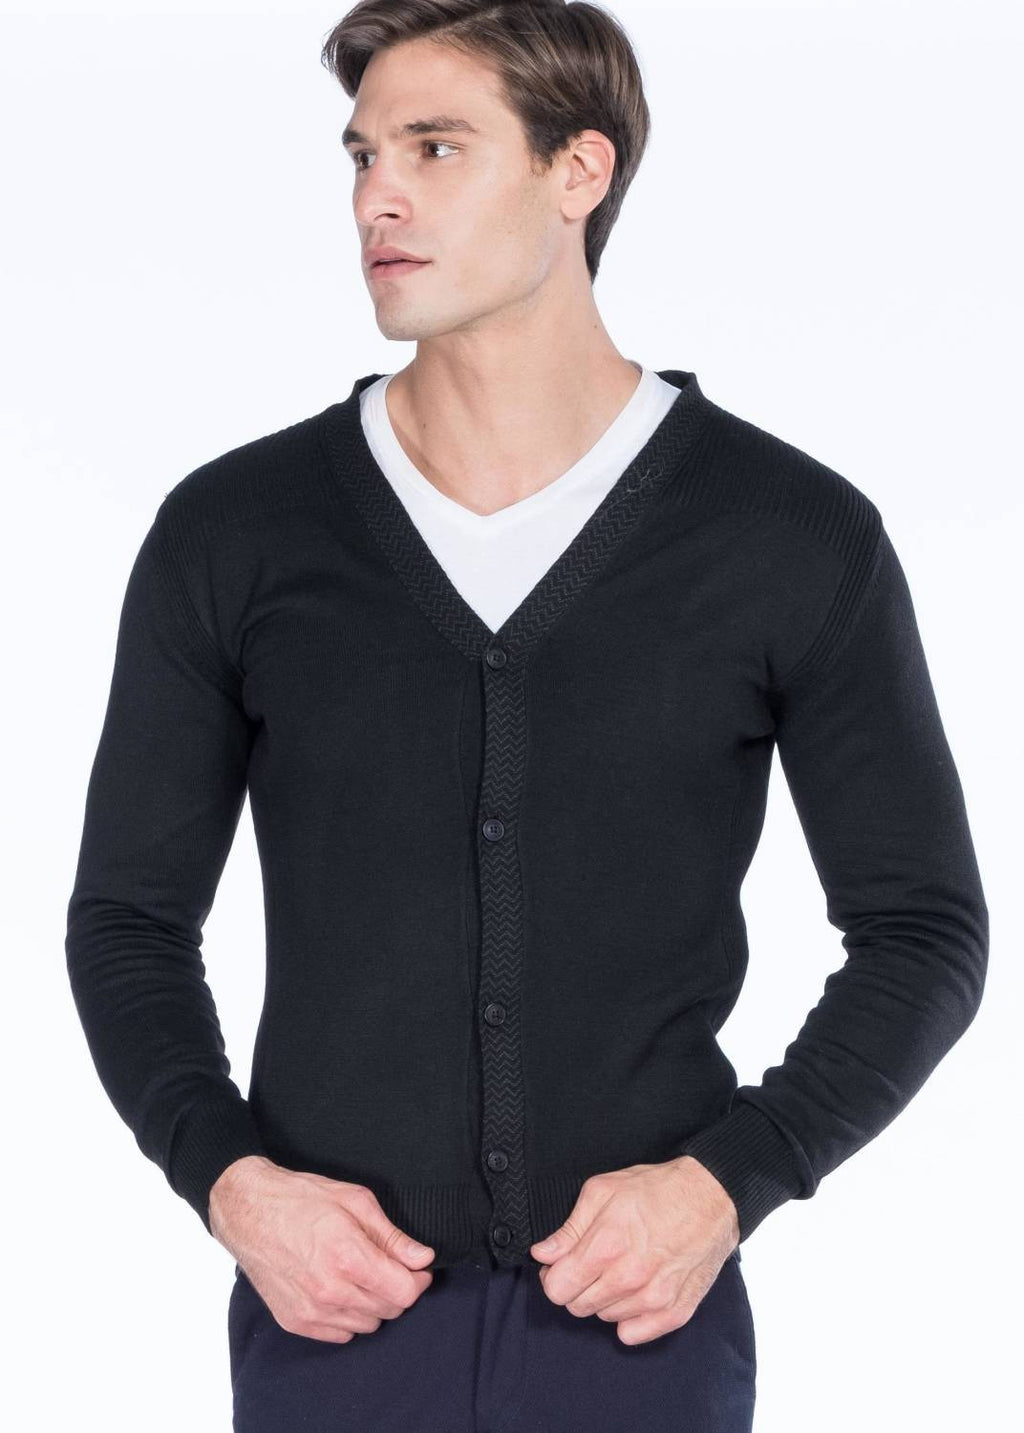 Men's V Neck Buttoned Black Black Cardigan